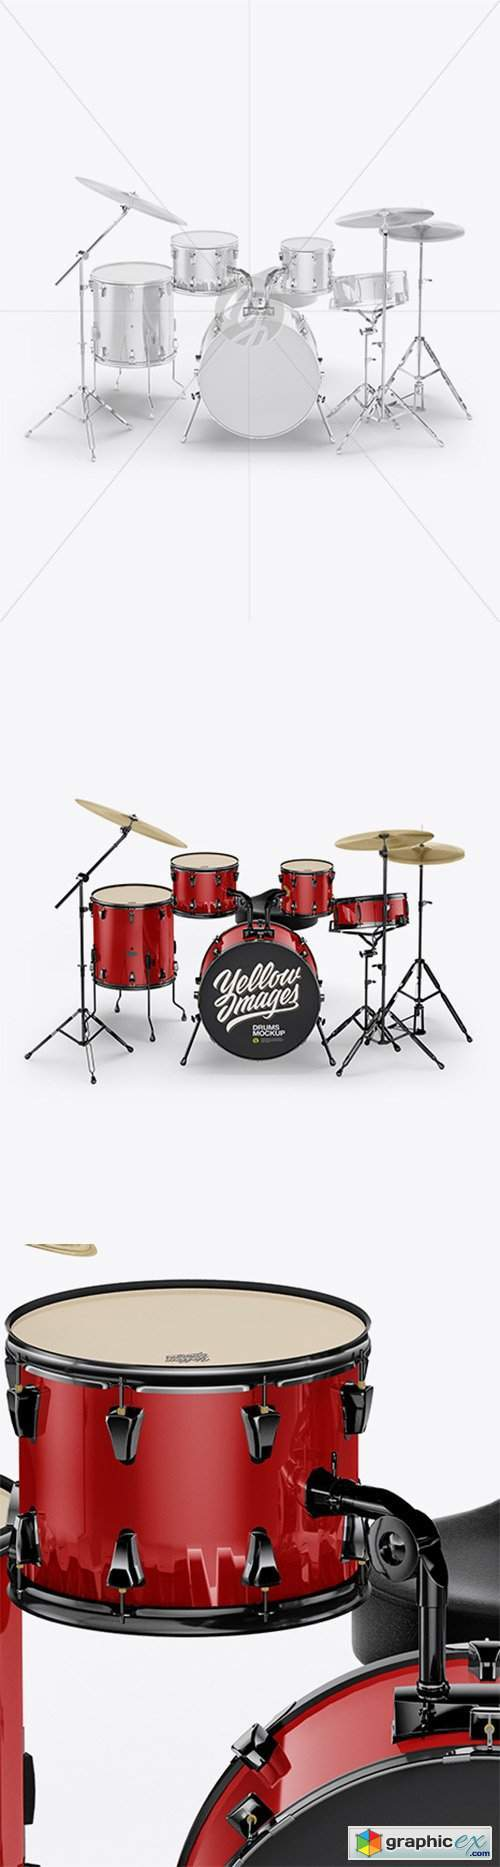 Drum Kit Mockup - Front View